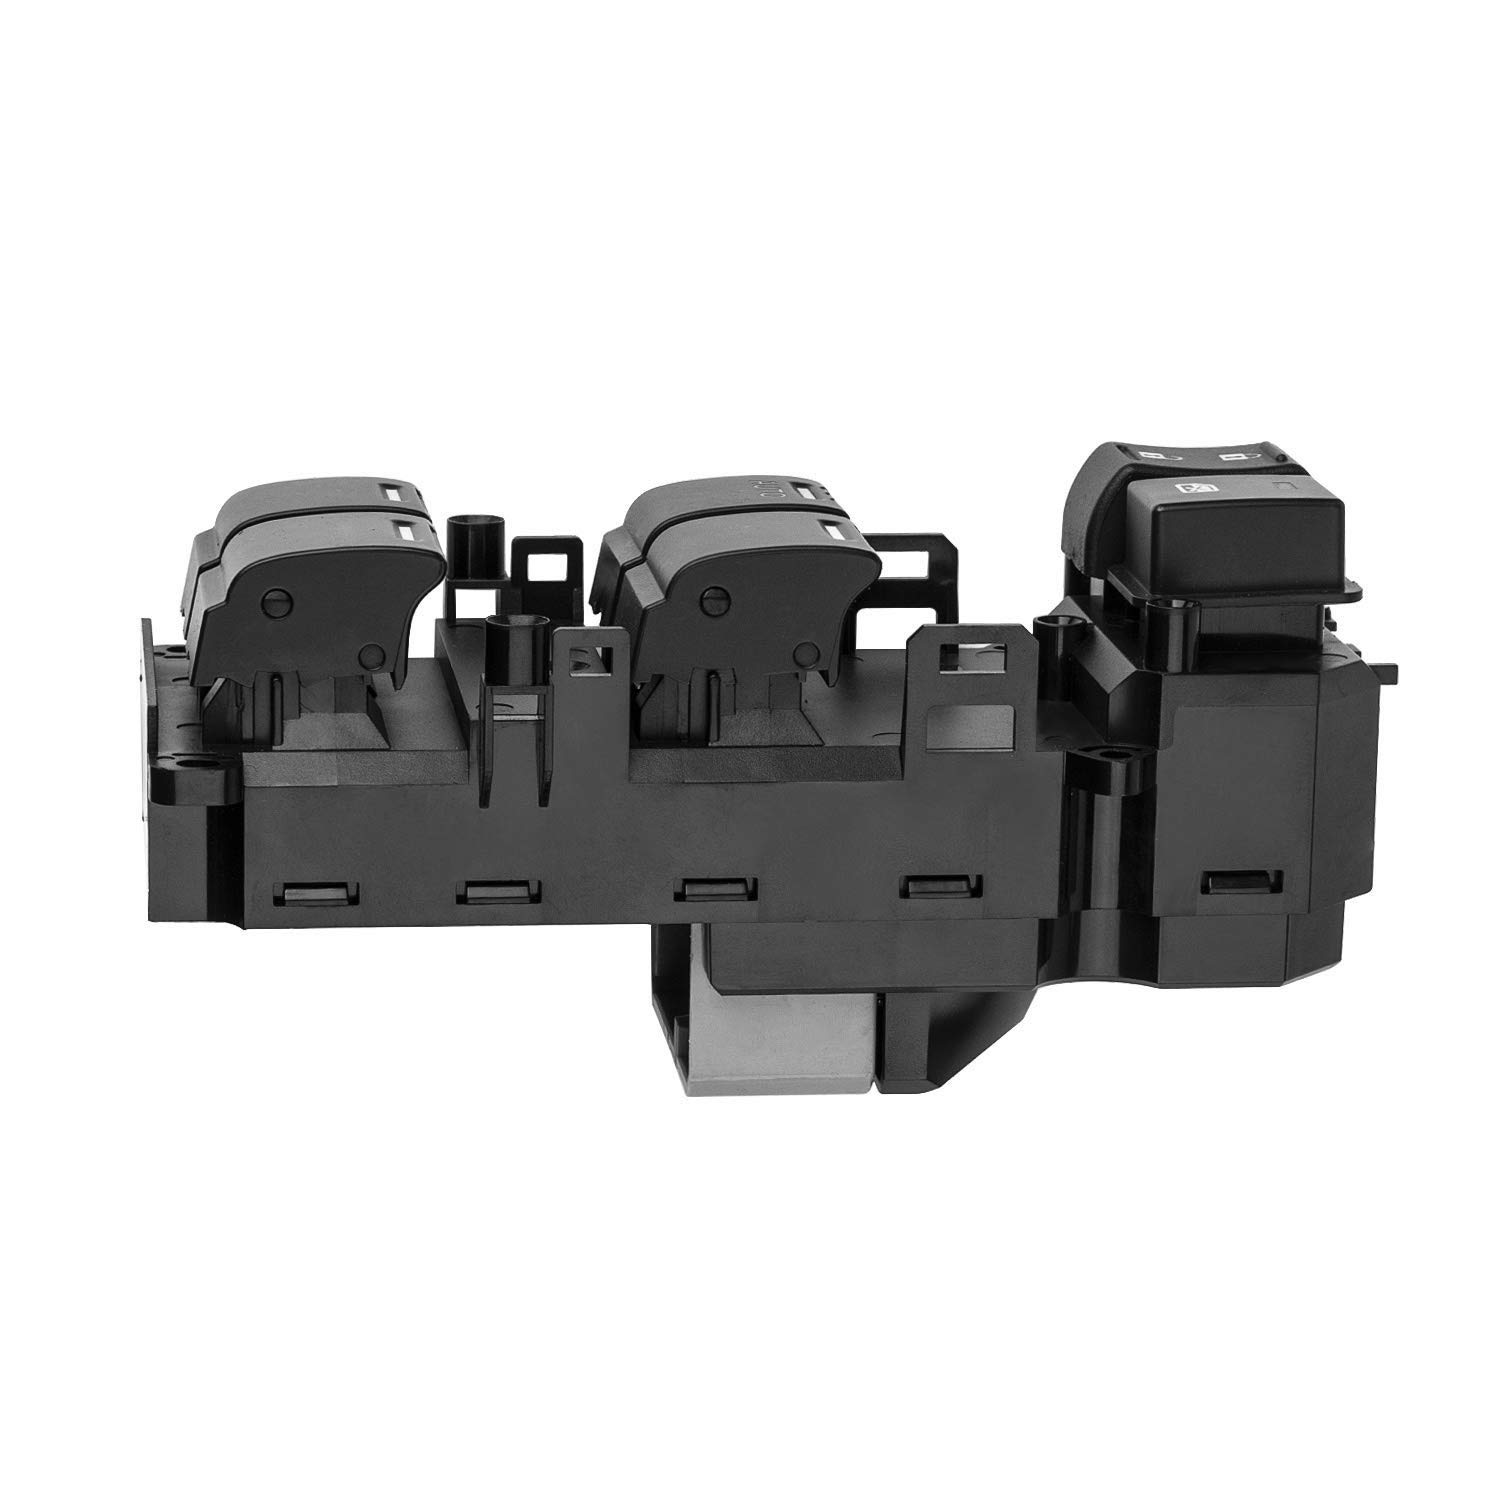 35750-TB0-H01 Driver Side Master Power Window Switch for Honda Accord 2008 2009 2010 2011 2012 35750-TA0-A02 Replace# 35750-TBD-H13